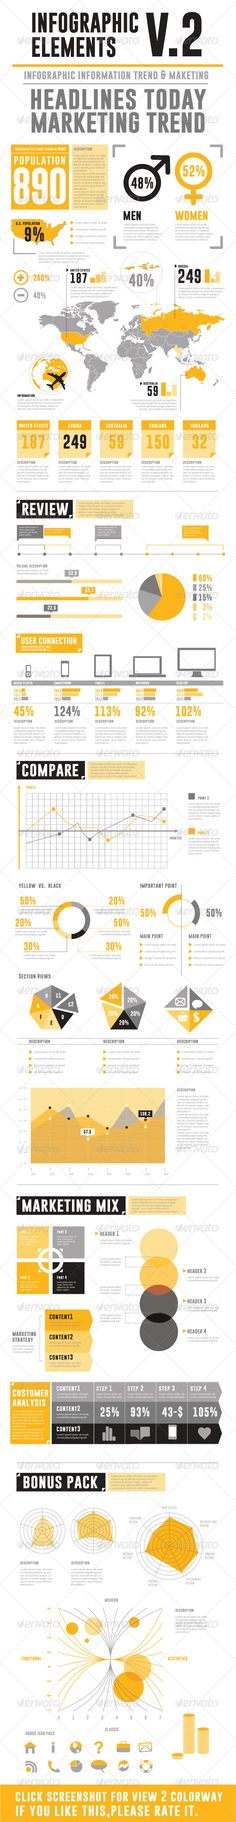 Infographic Elements V.2 The color scheme used is of a Modern and retro type but can be changed to anything to match your design preference. http://startupstacks.com/infographics/infographic-elements-v-2.html - free download